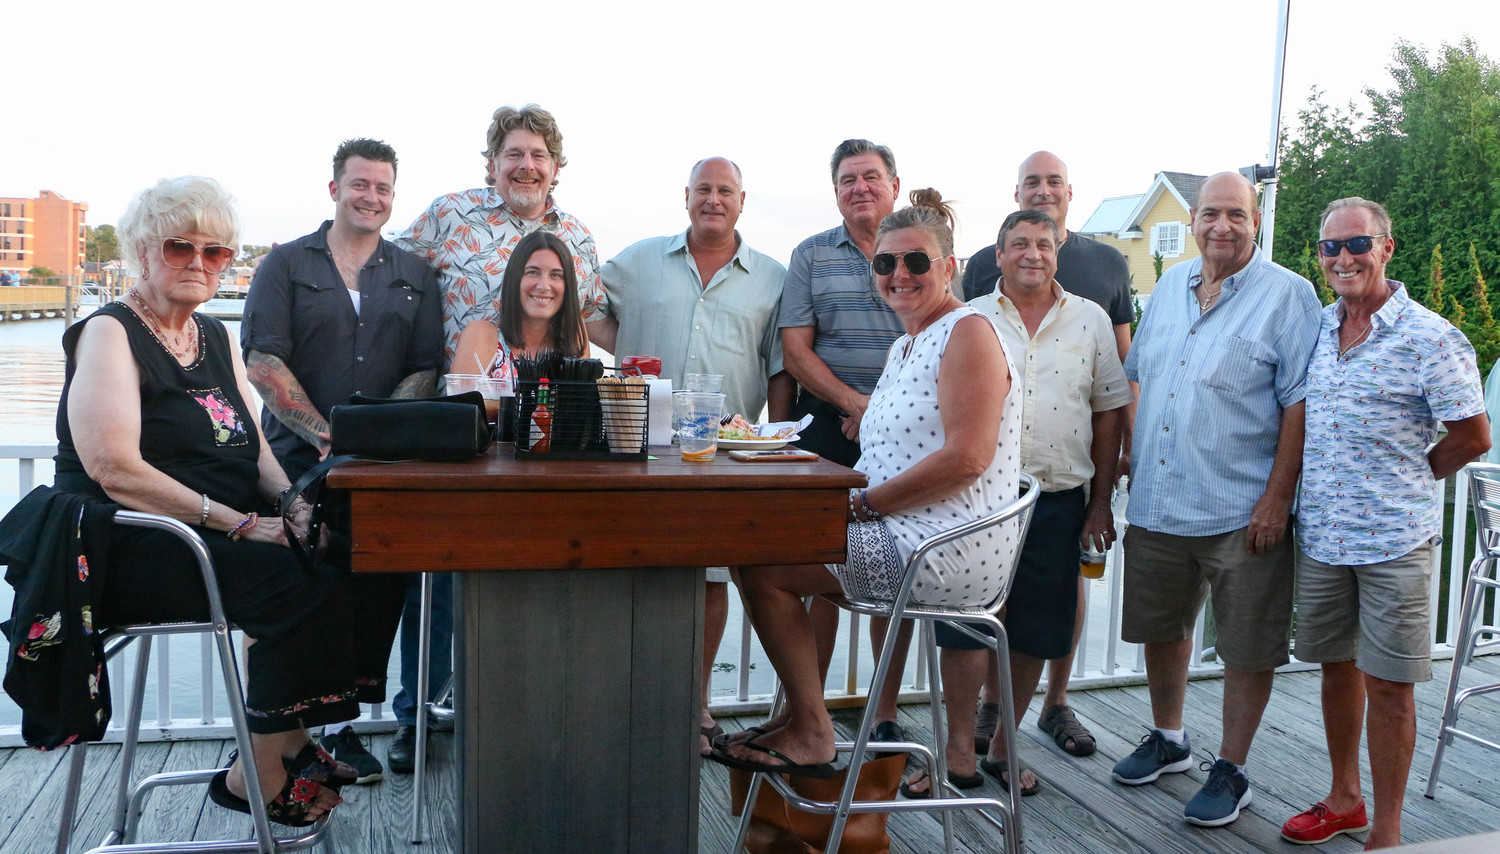 Members of the Island Park Chamber of Commerce came to Jordan's Lobster Farm in Island Park for their seventh annual summer mixer on the night of Aug. 9 to mingle with business owners and residents.